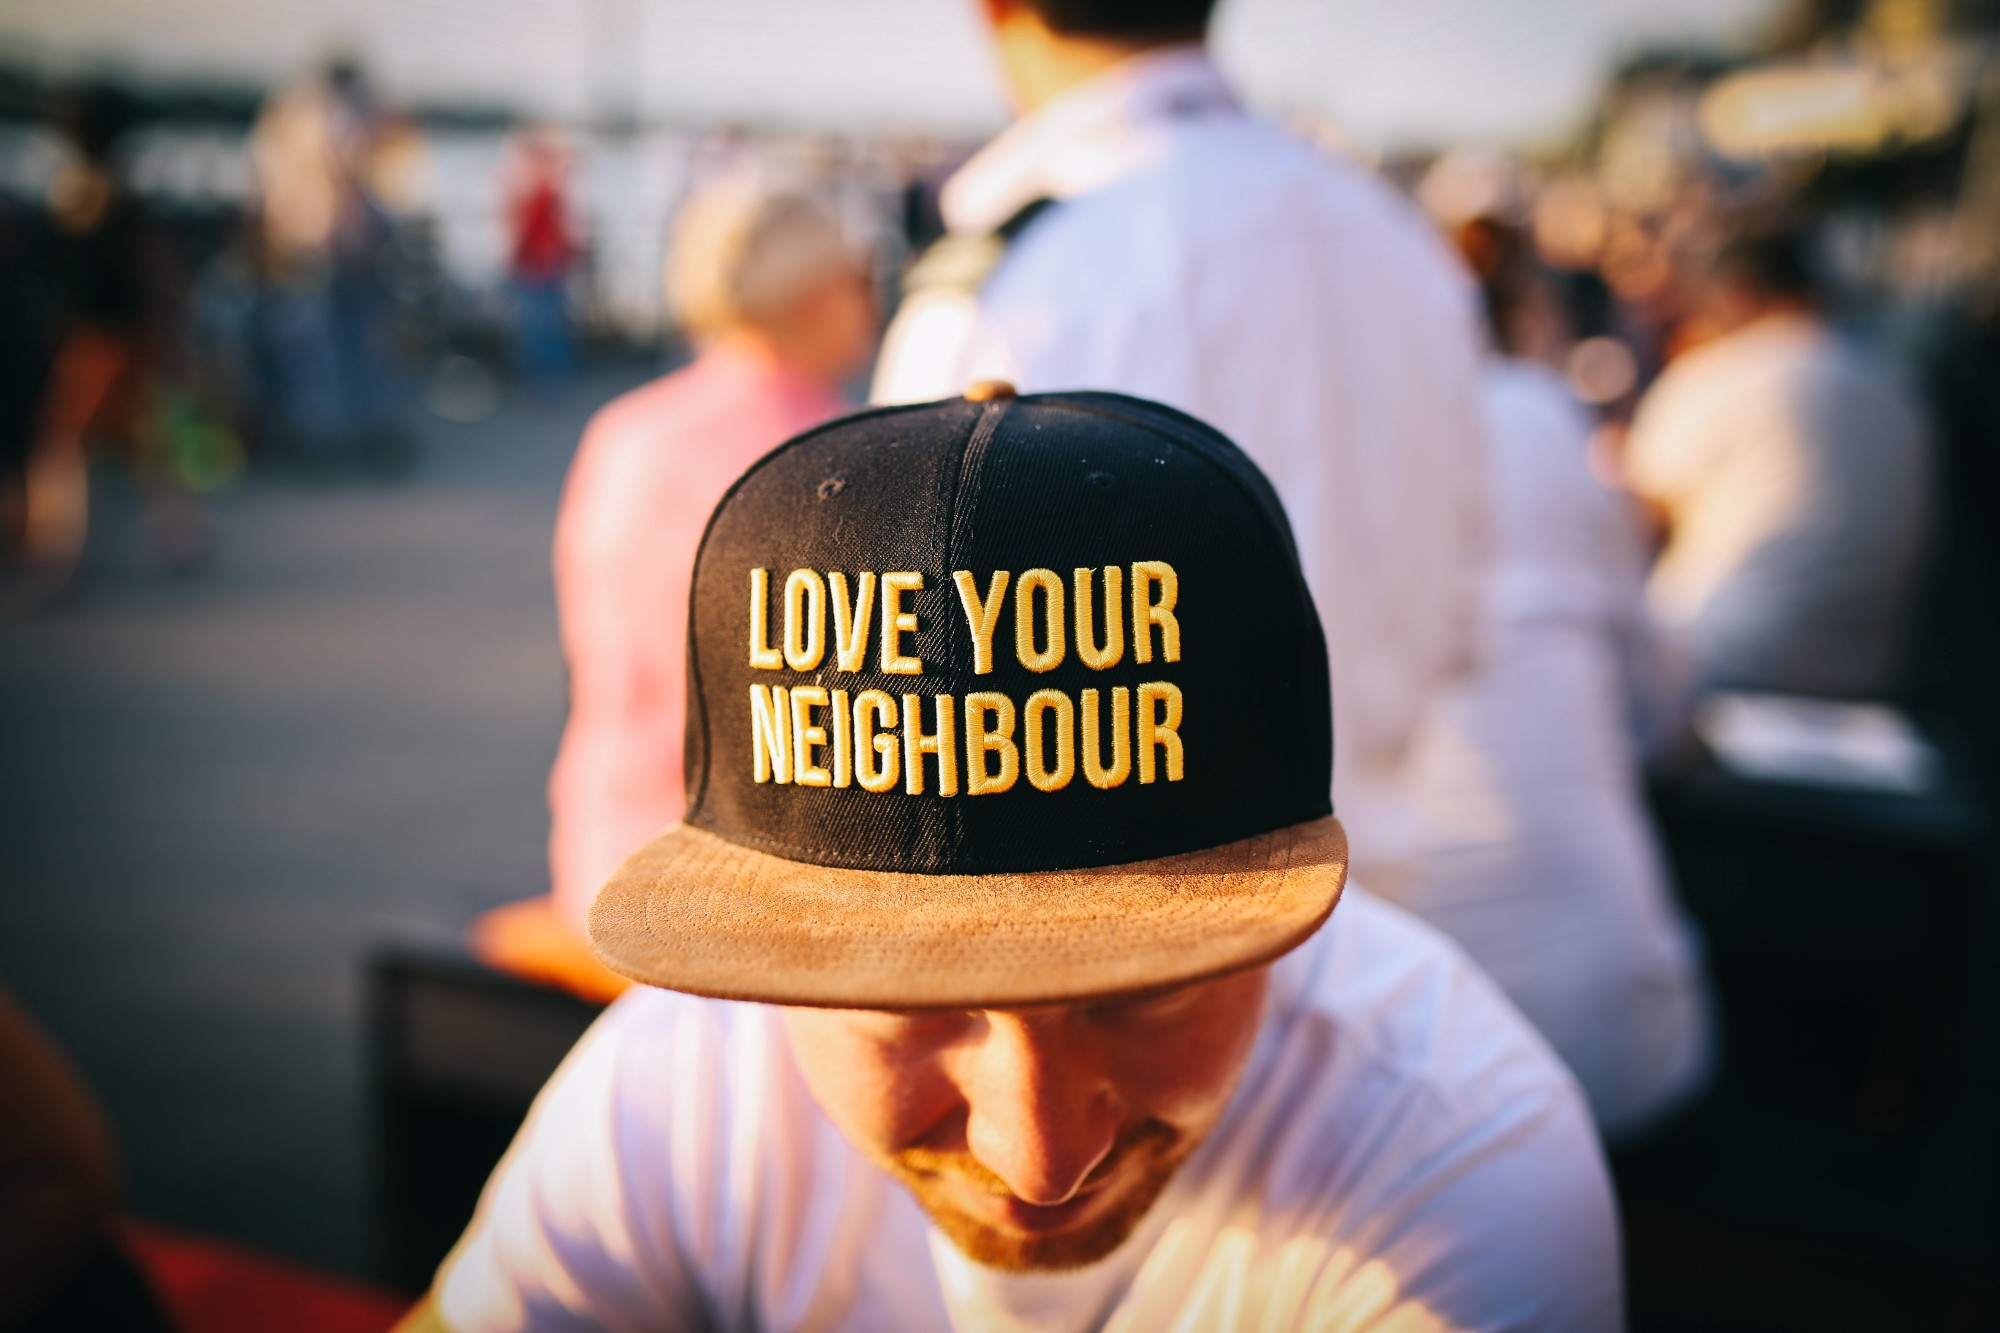 Love thy neighbour. In what ways does love for ones neighbor manifest itself